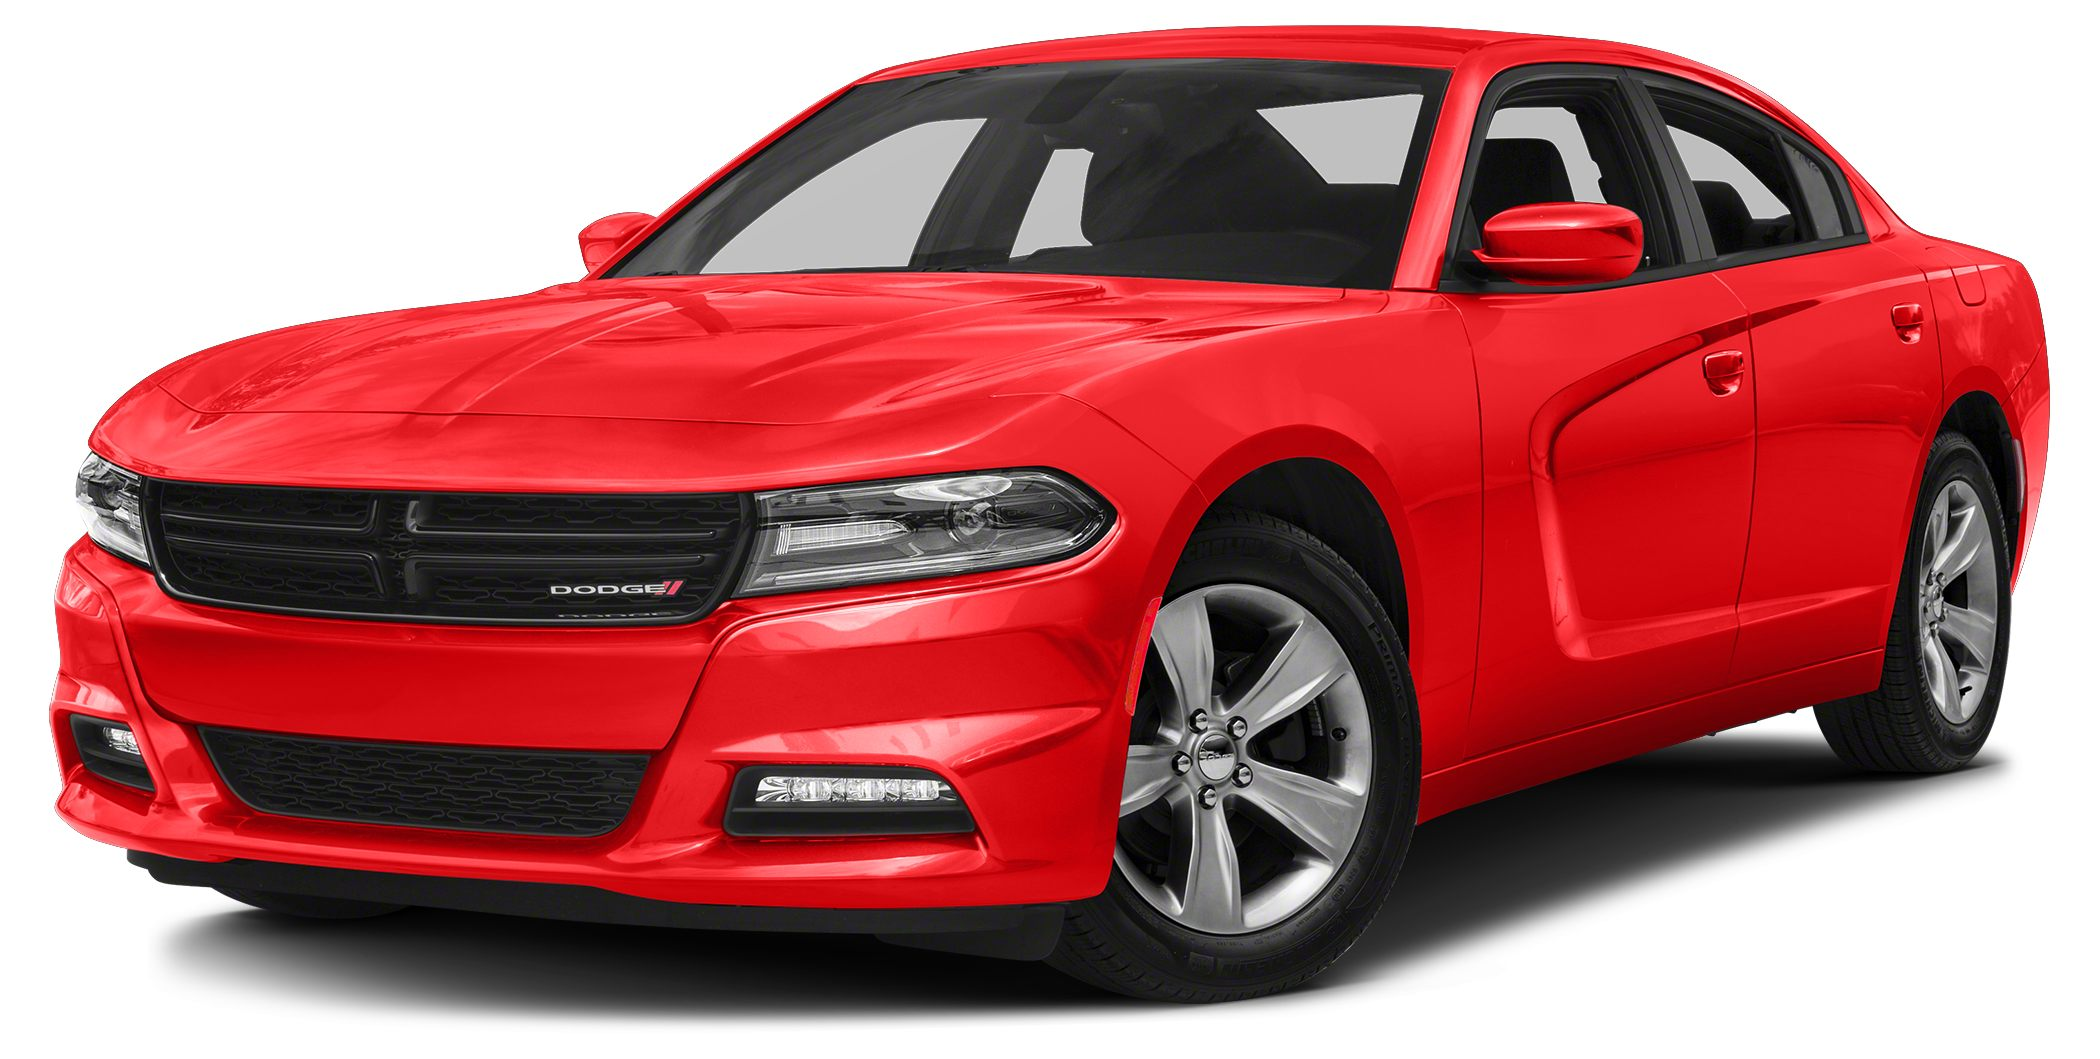 dodge charger sxt vs chrysler 300 touring. Black Bedroom Furniture Sets. Home Design Ideas